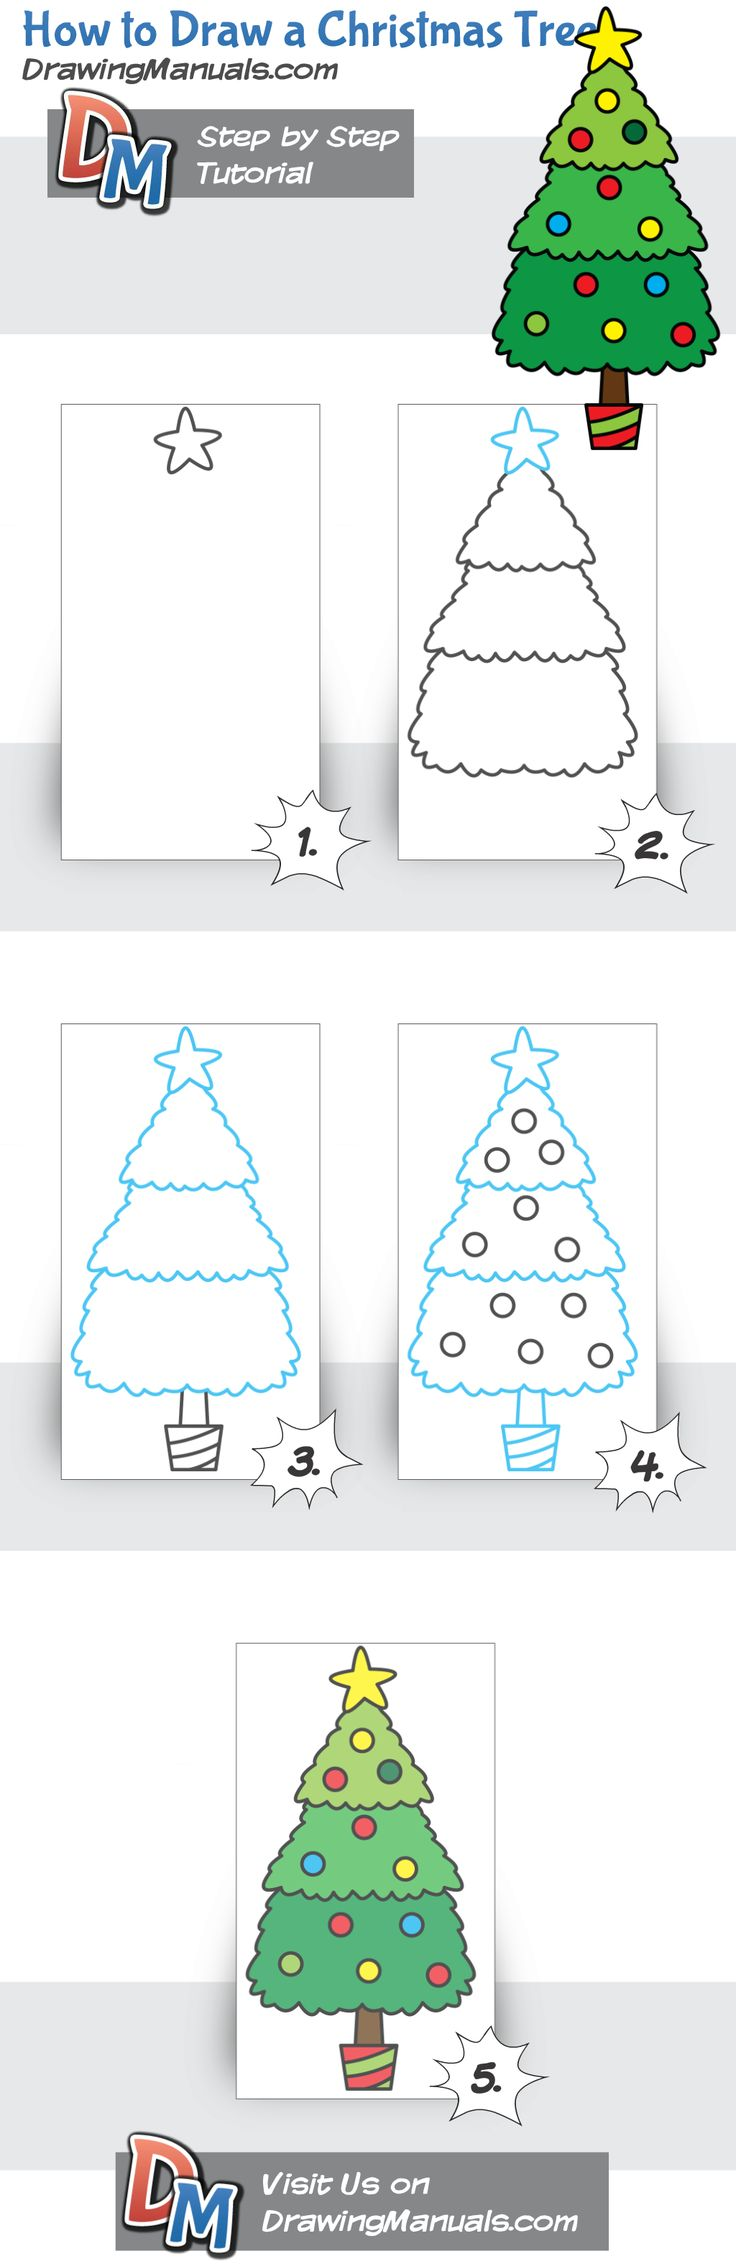 How to Draw a Christmas Tree http://drawingmanuals.com/manual/how-to-draw-a-christmas-tree/